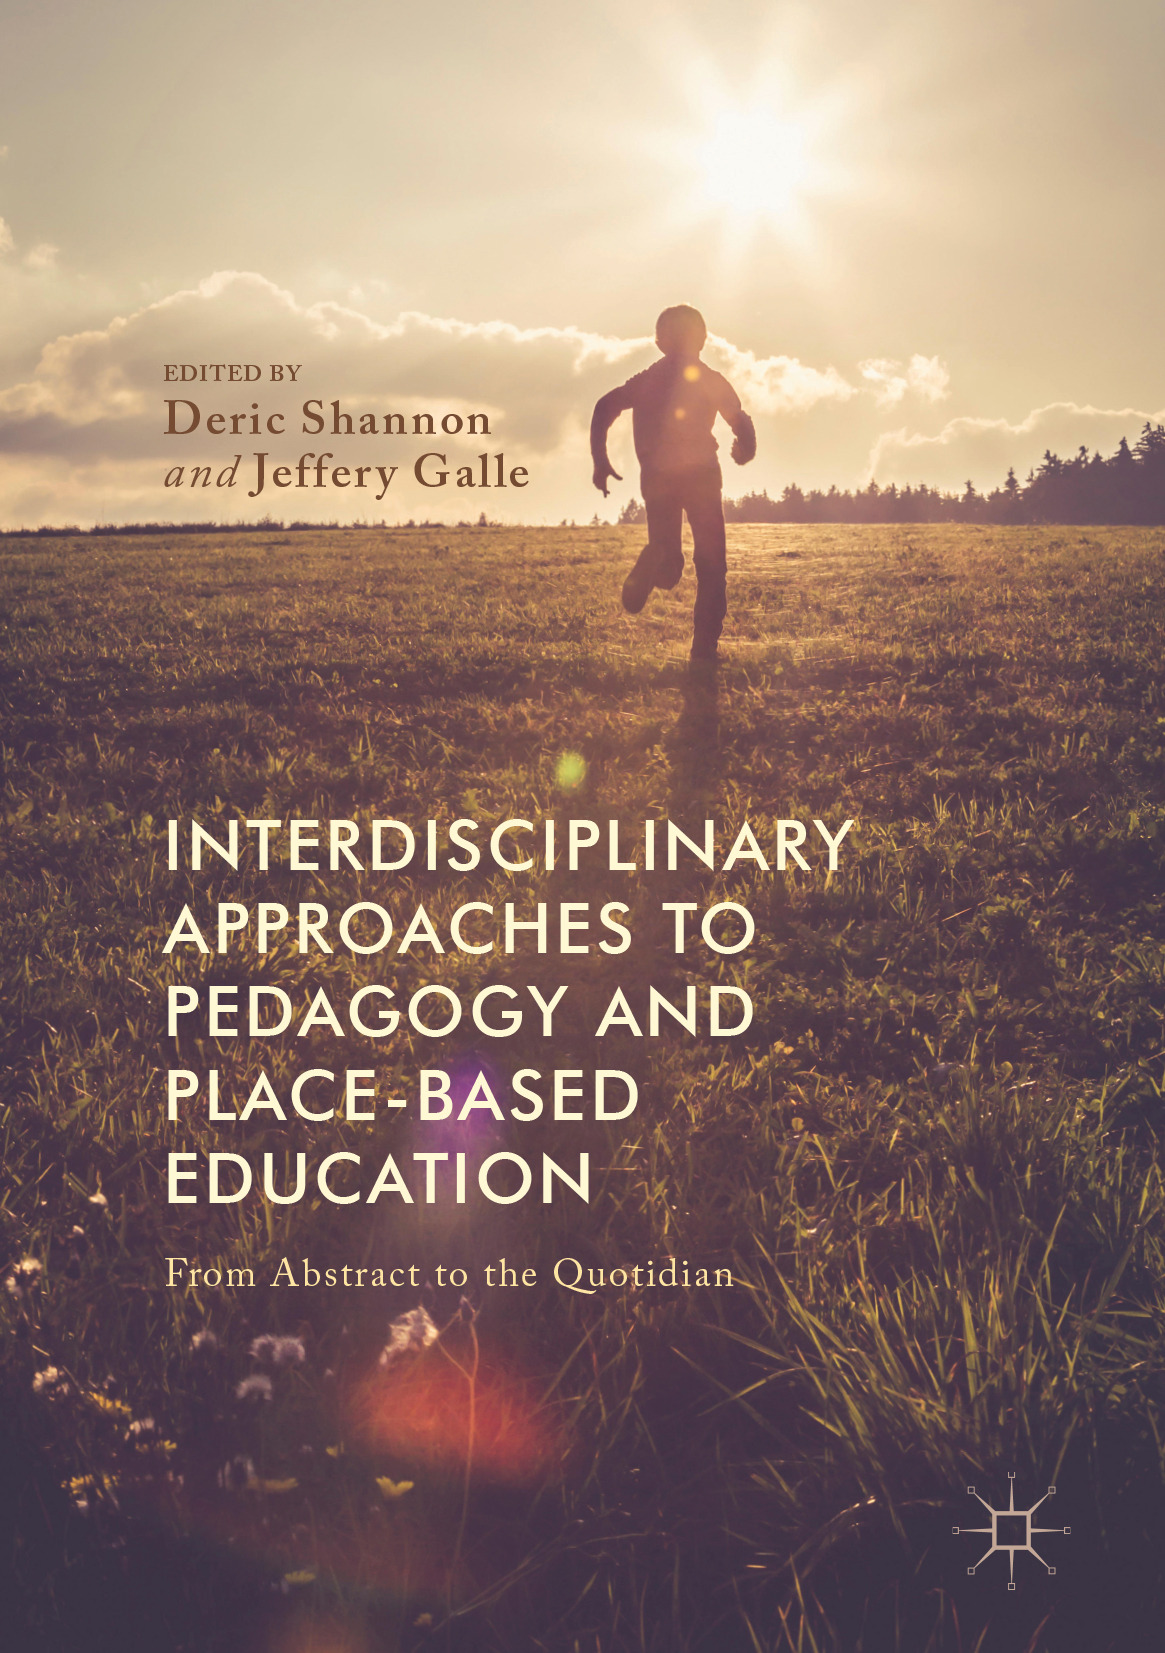 Galle, Jeffery - Interdisciplinary Approaches to Pedagogy and Place-Based Education, ebook